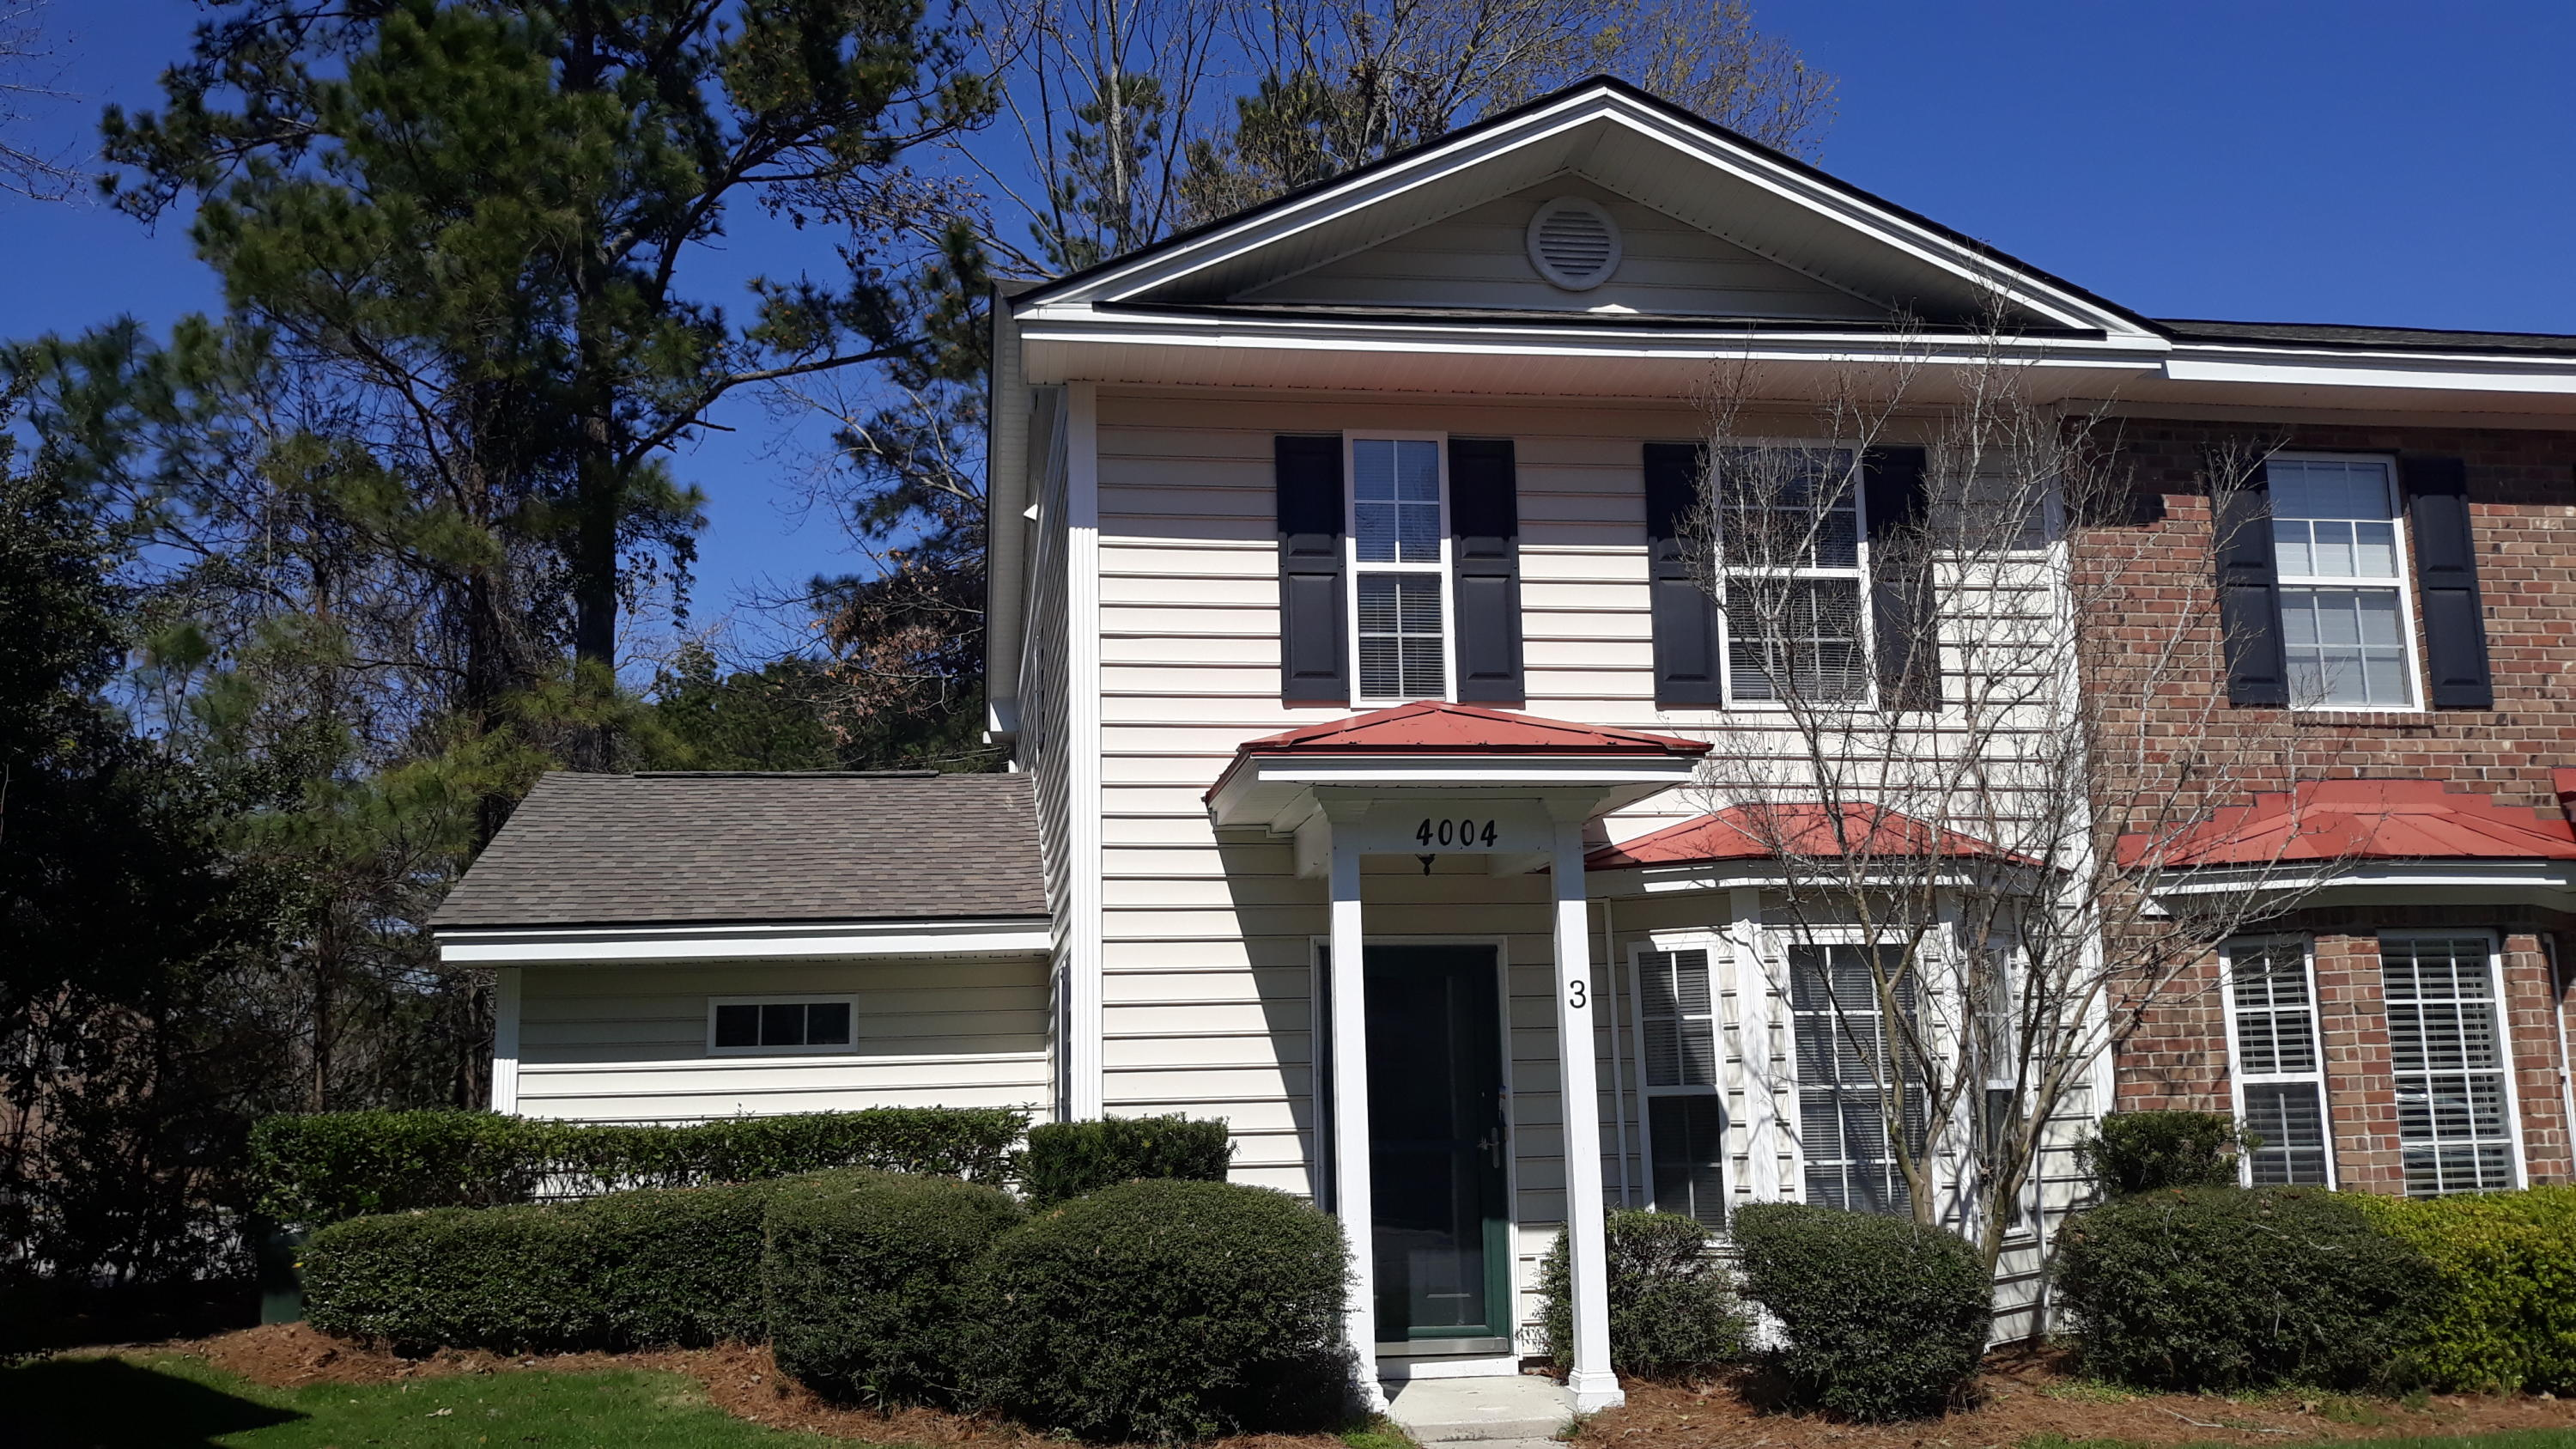 Radcliffe Place Homes For Sale - 4004 Radcliffe Place, Charleston, SC - 0